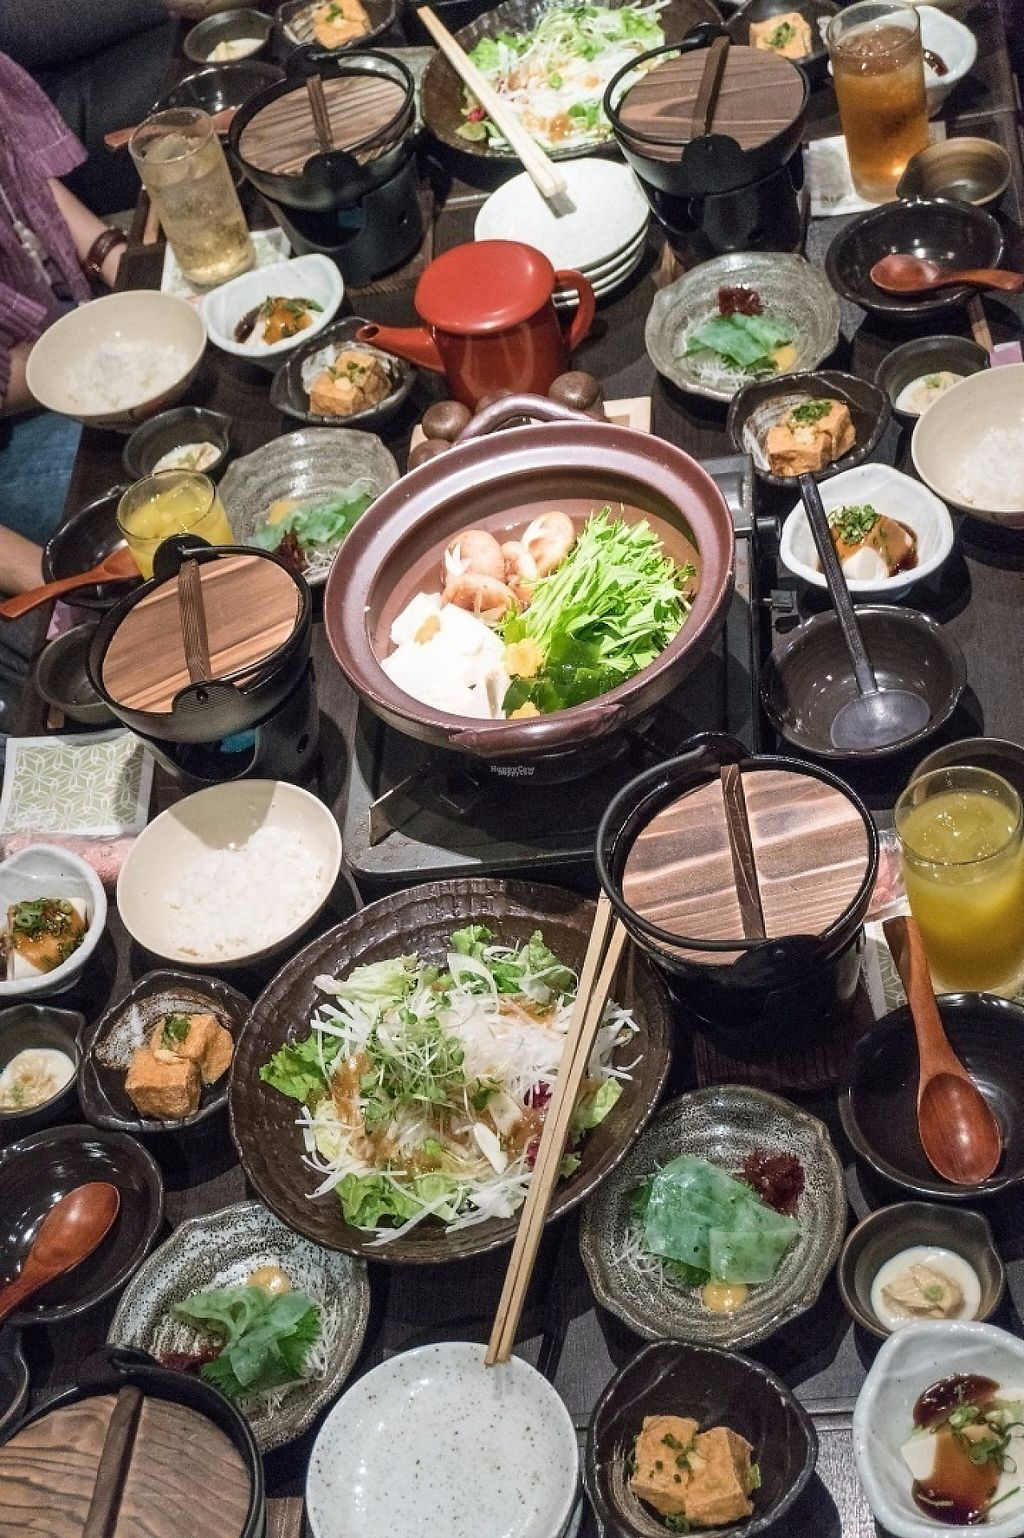 """Photo of Kikkon - Yurakucho  by <a href=""""/members/profile/VegeProjectJapan"""">VegeProjectJapan</a> <br/>Vegan course <br/> April 19, 2017  - <a href='/contact/abuse/image/90550/249845'>Report</a>"""